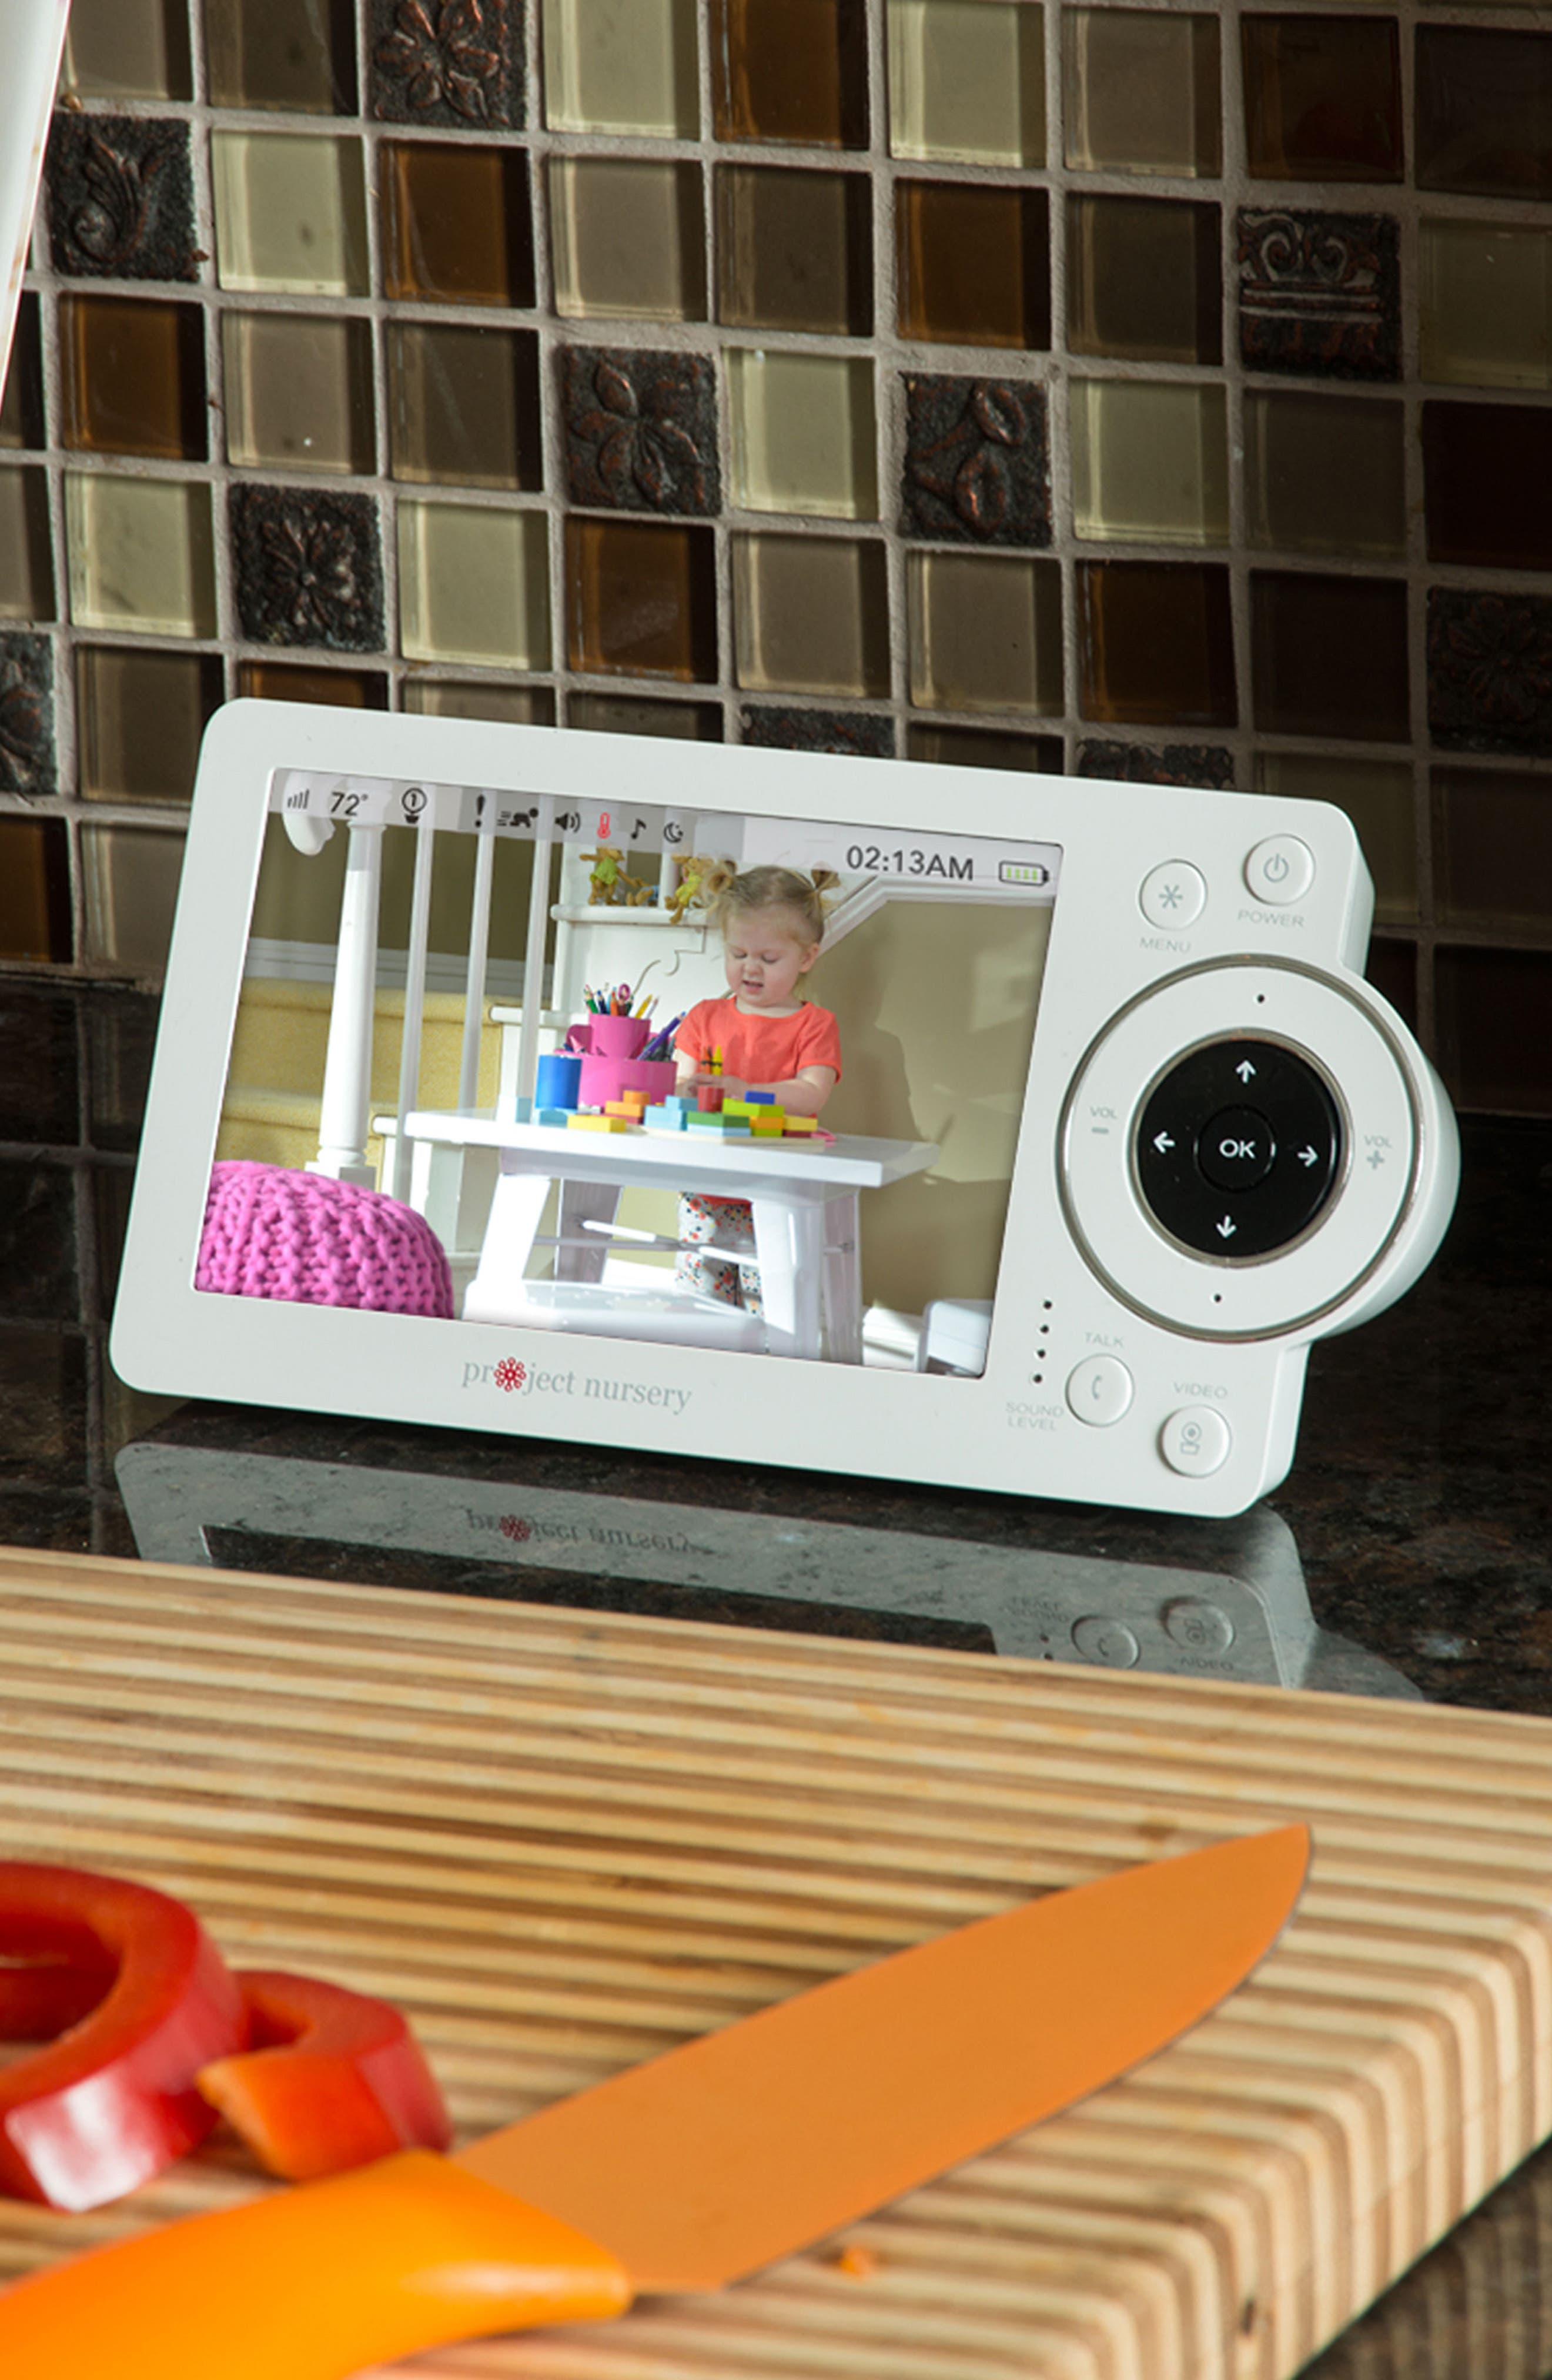 "Alternate Image 4  - Project Nursery 5"" High Definition Baby Monitor System with 1 1/2"" Mini Monitor"